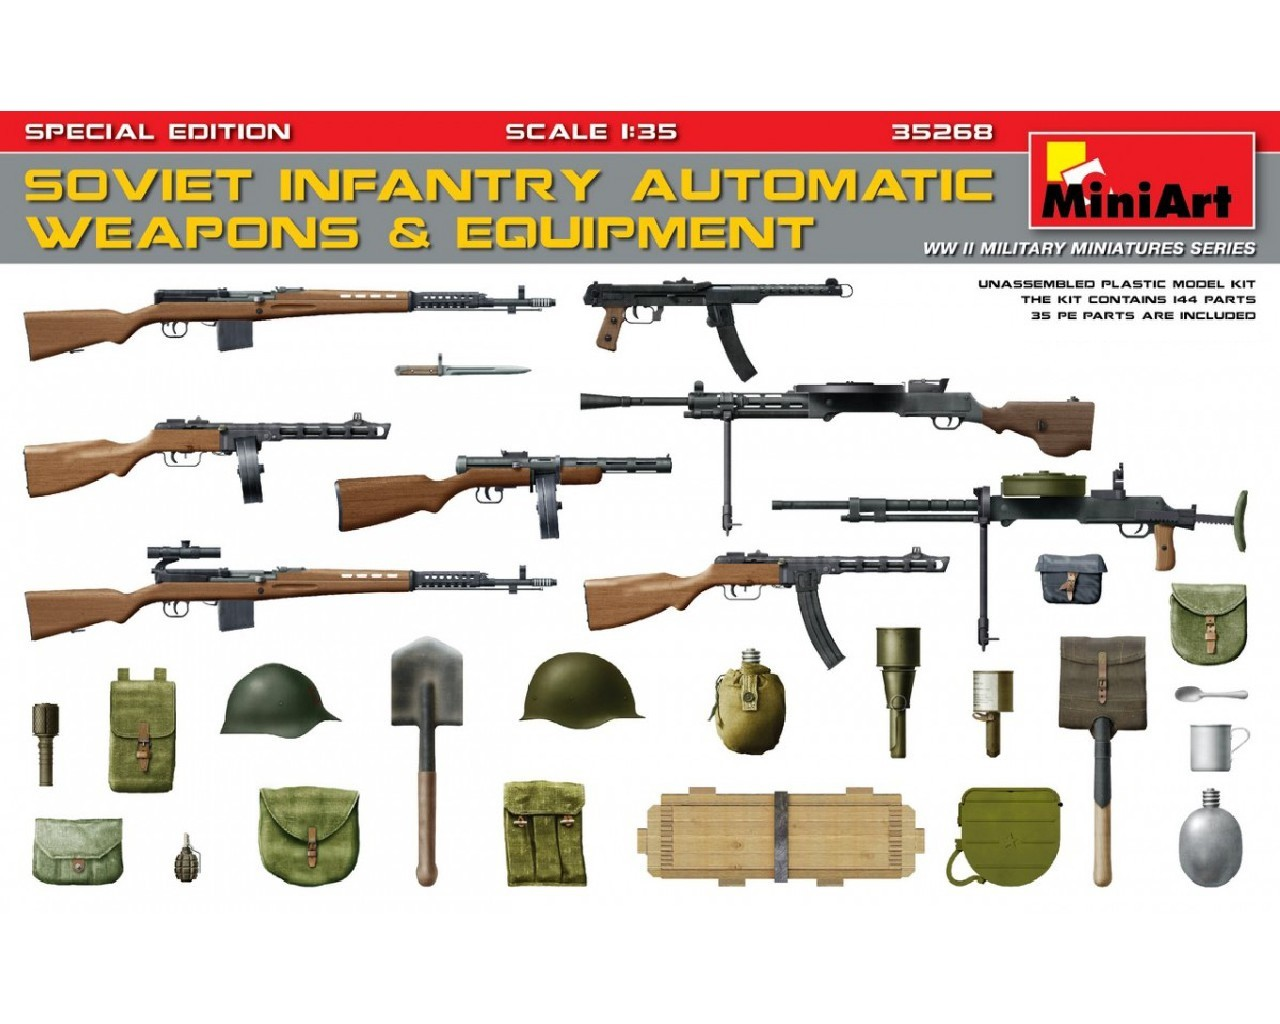 1/35 Sov. Inf. Automatic Weapons and Equipment. Sp. Ed.